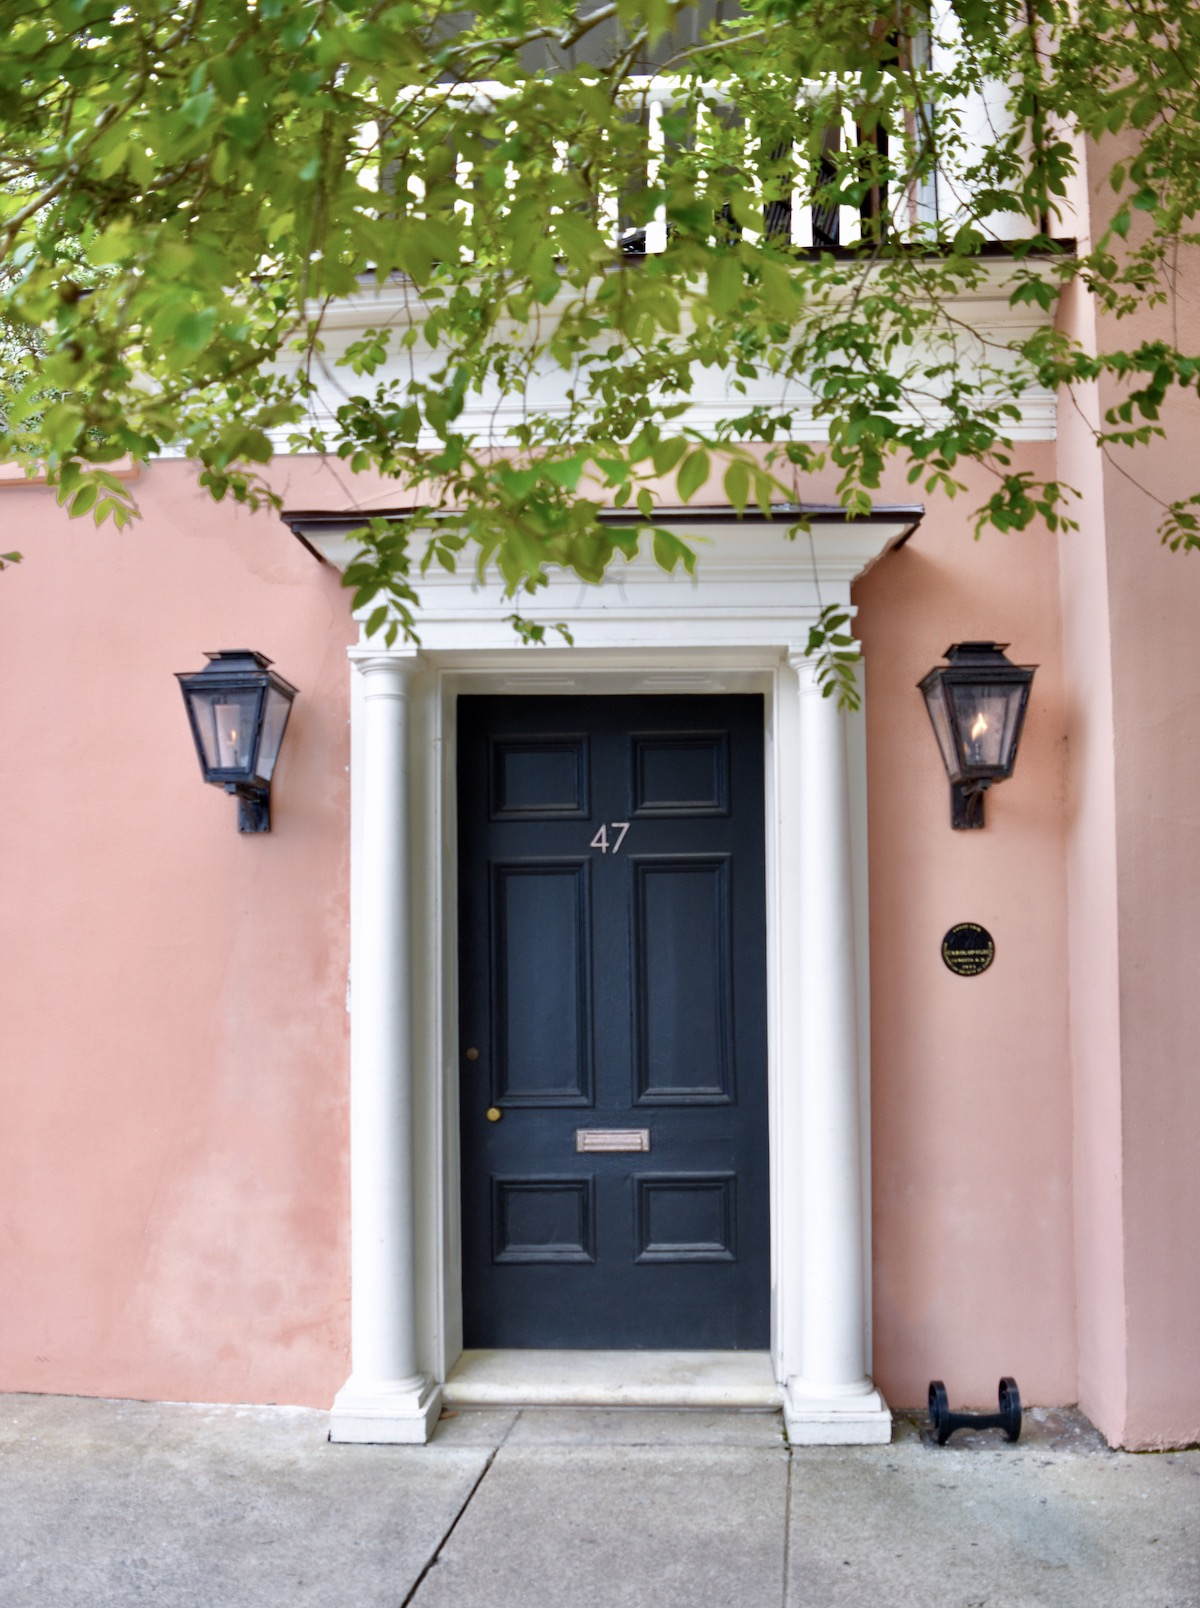 47 E Bay Street, Charleston, SC Coral House Pink House 2